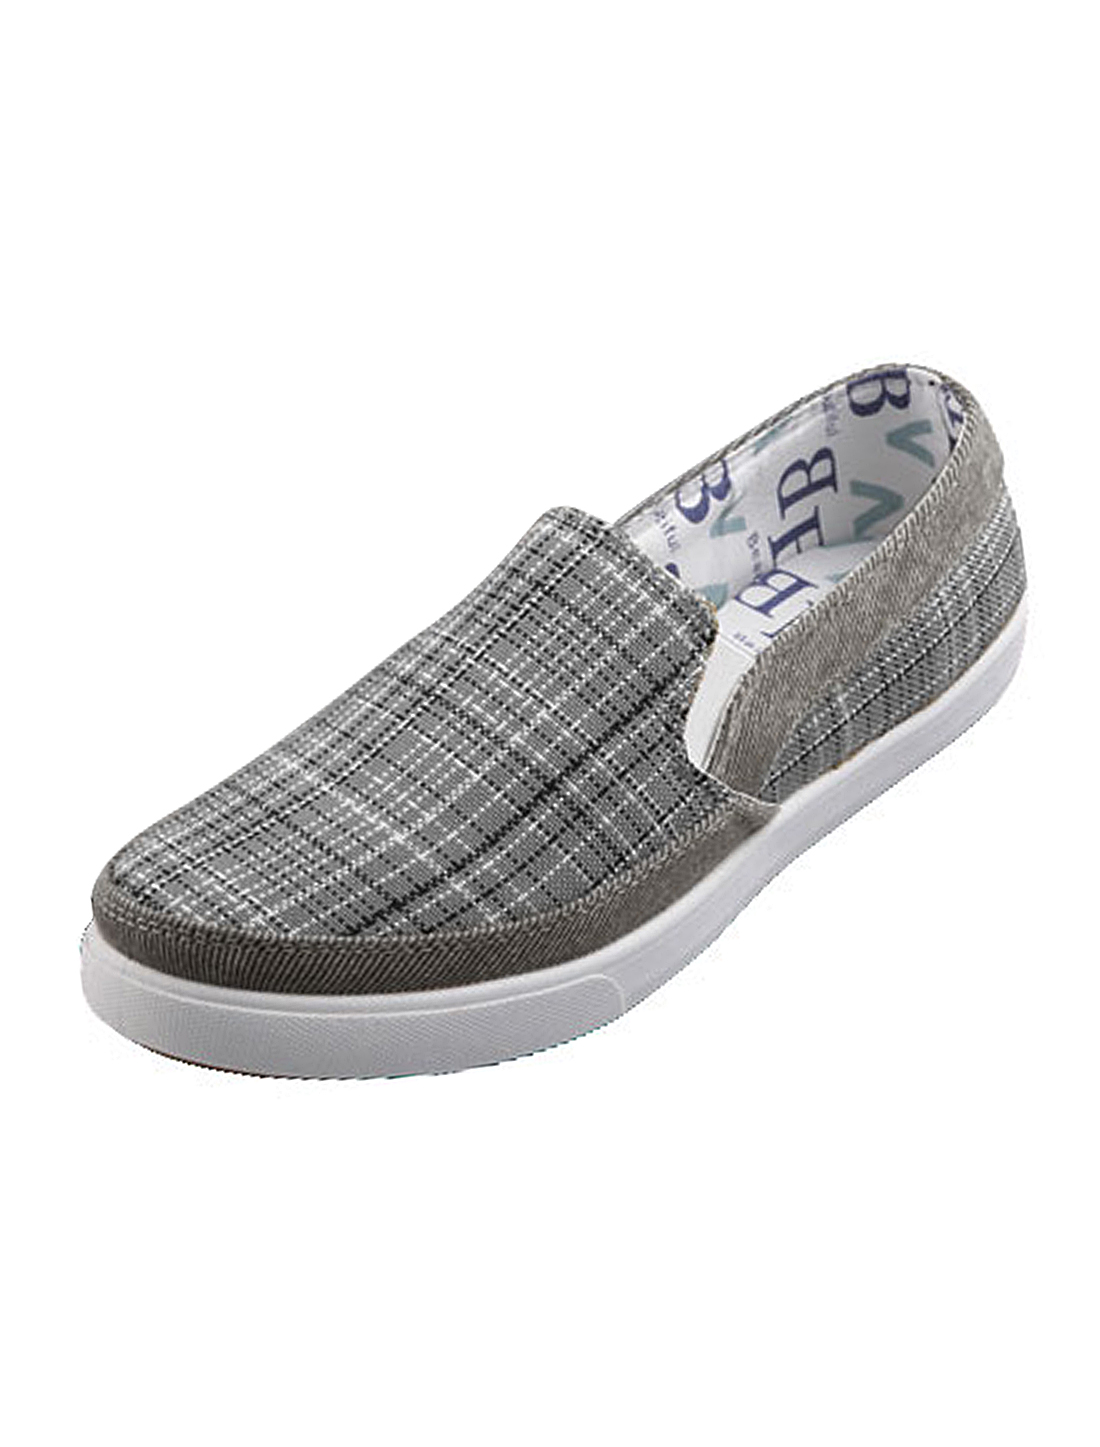 US Size 11 Grey Stylish Plaids Pattern Gentle Footbed Men Loafer Shoes